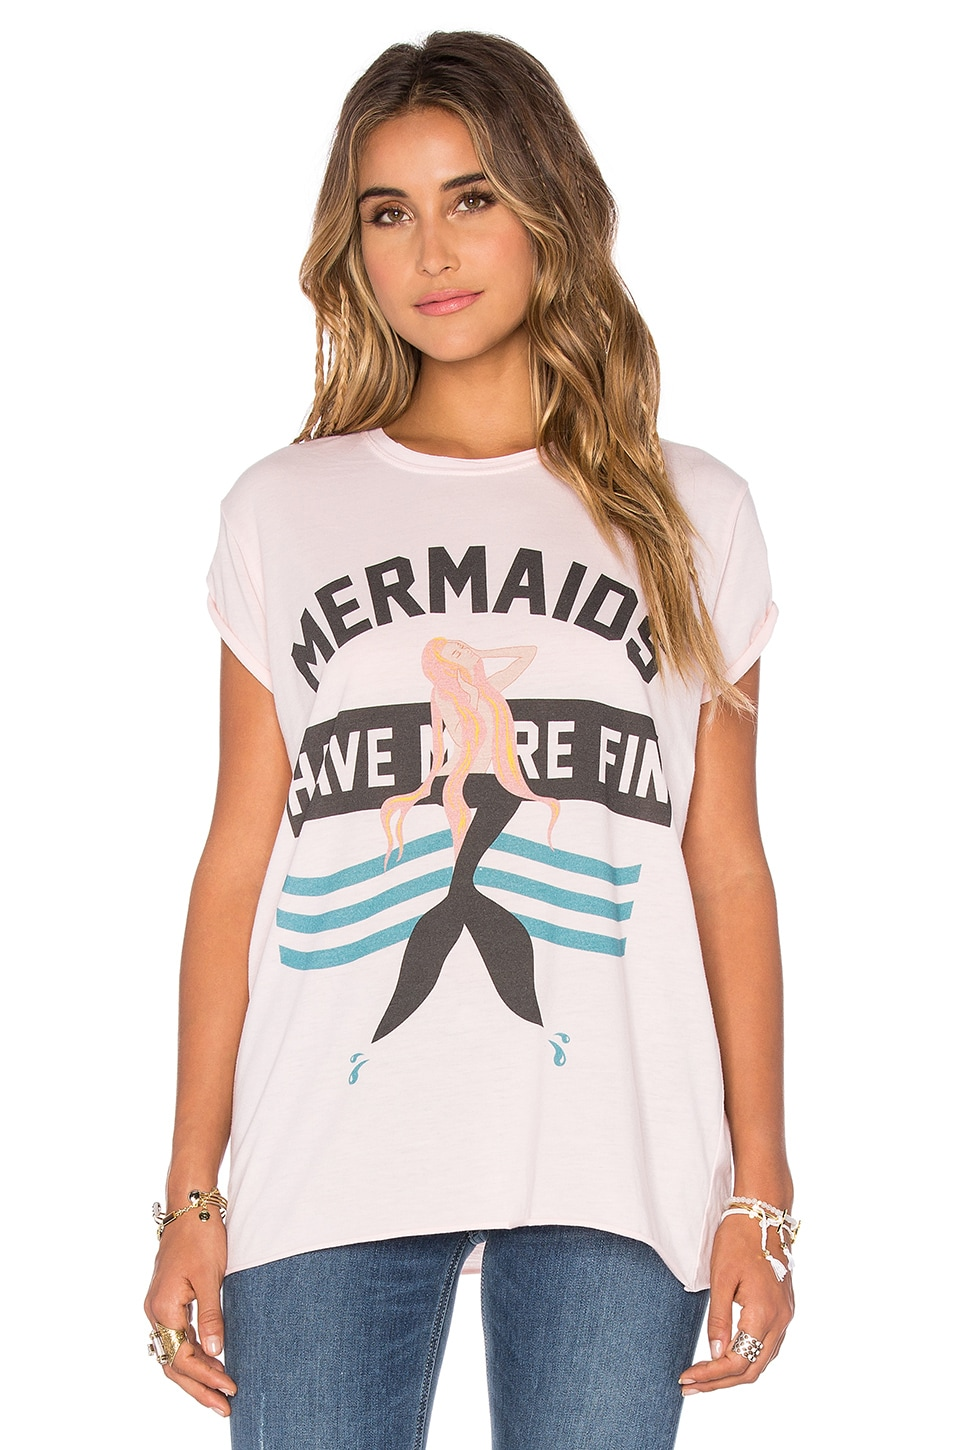 The Laundry Room Mermaids Have More Fin Rolling Tee in Shell